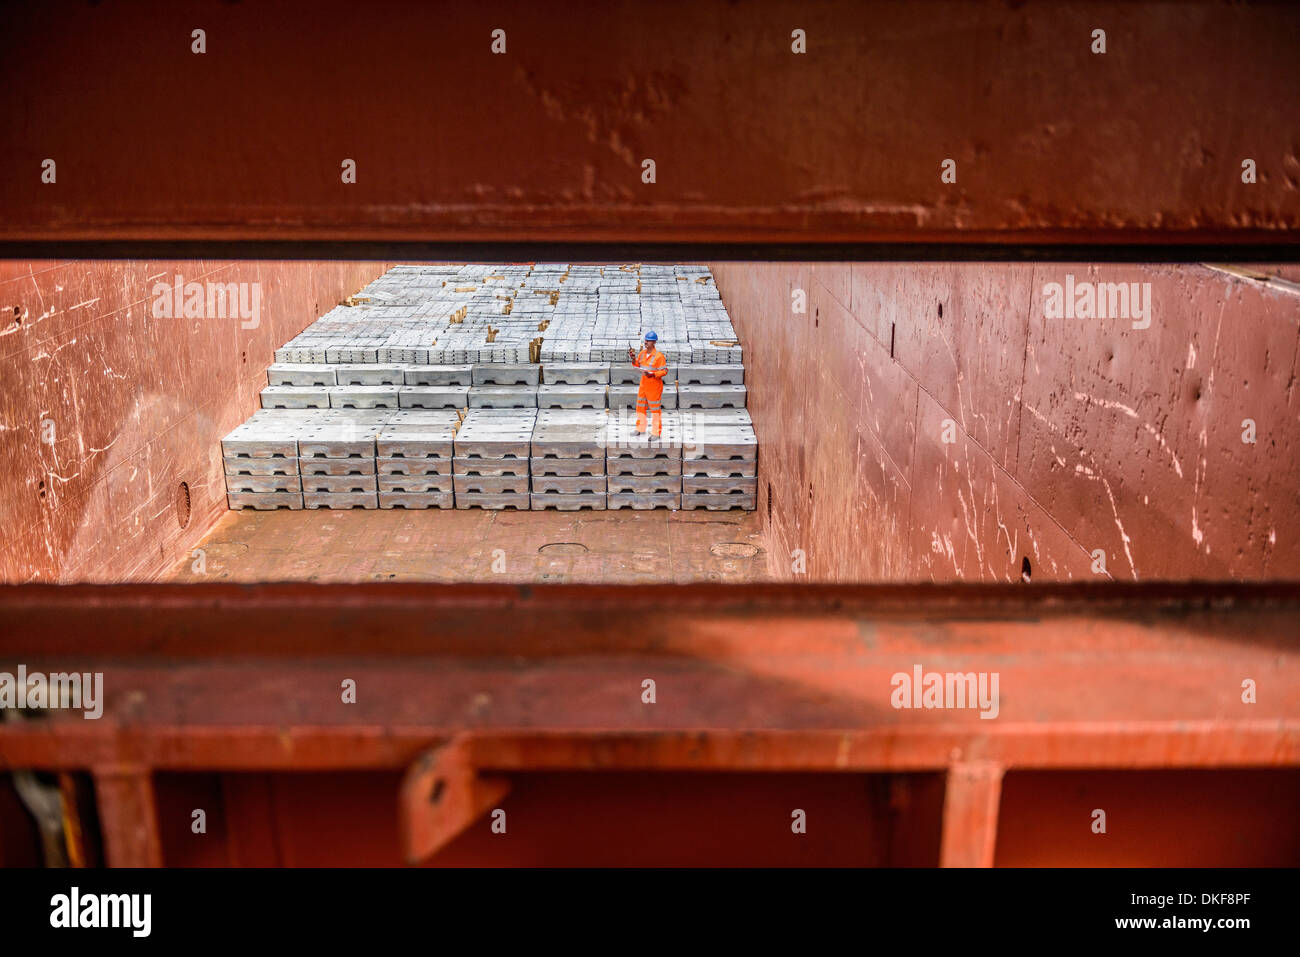 Worker checking metal ingots in ship's hold - Stock Image